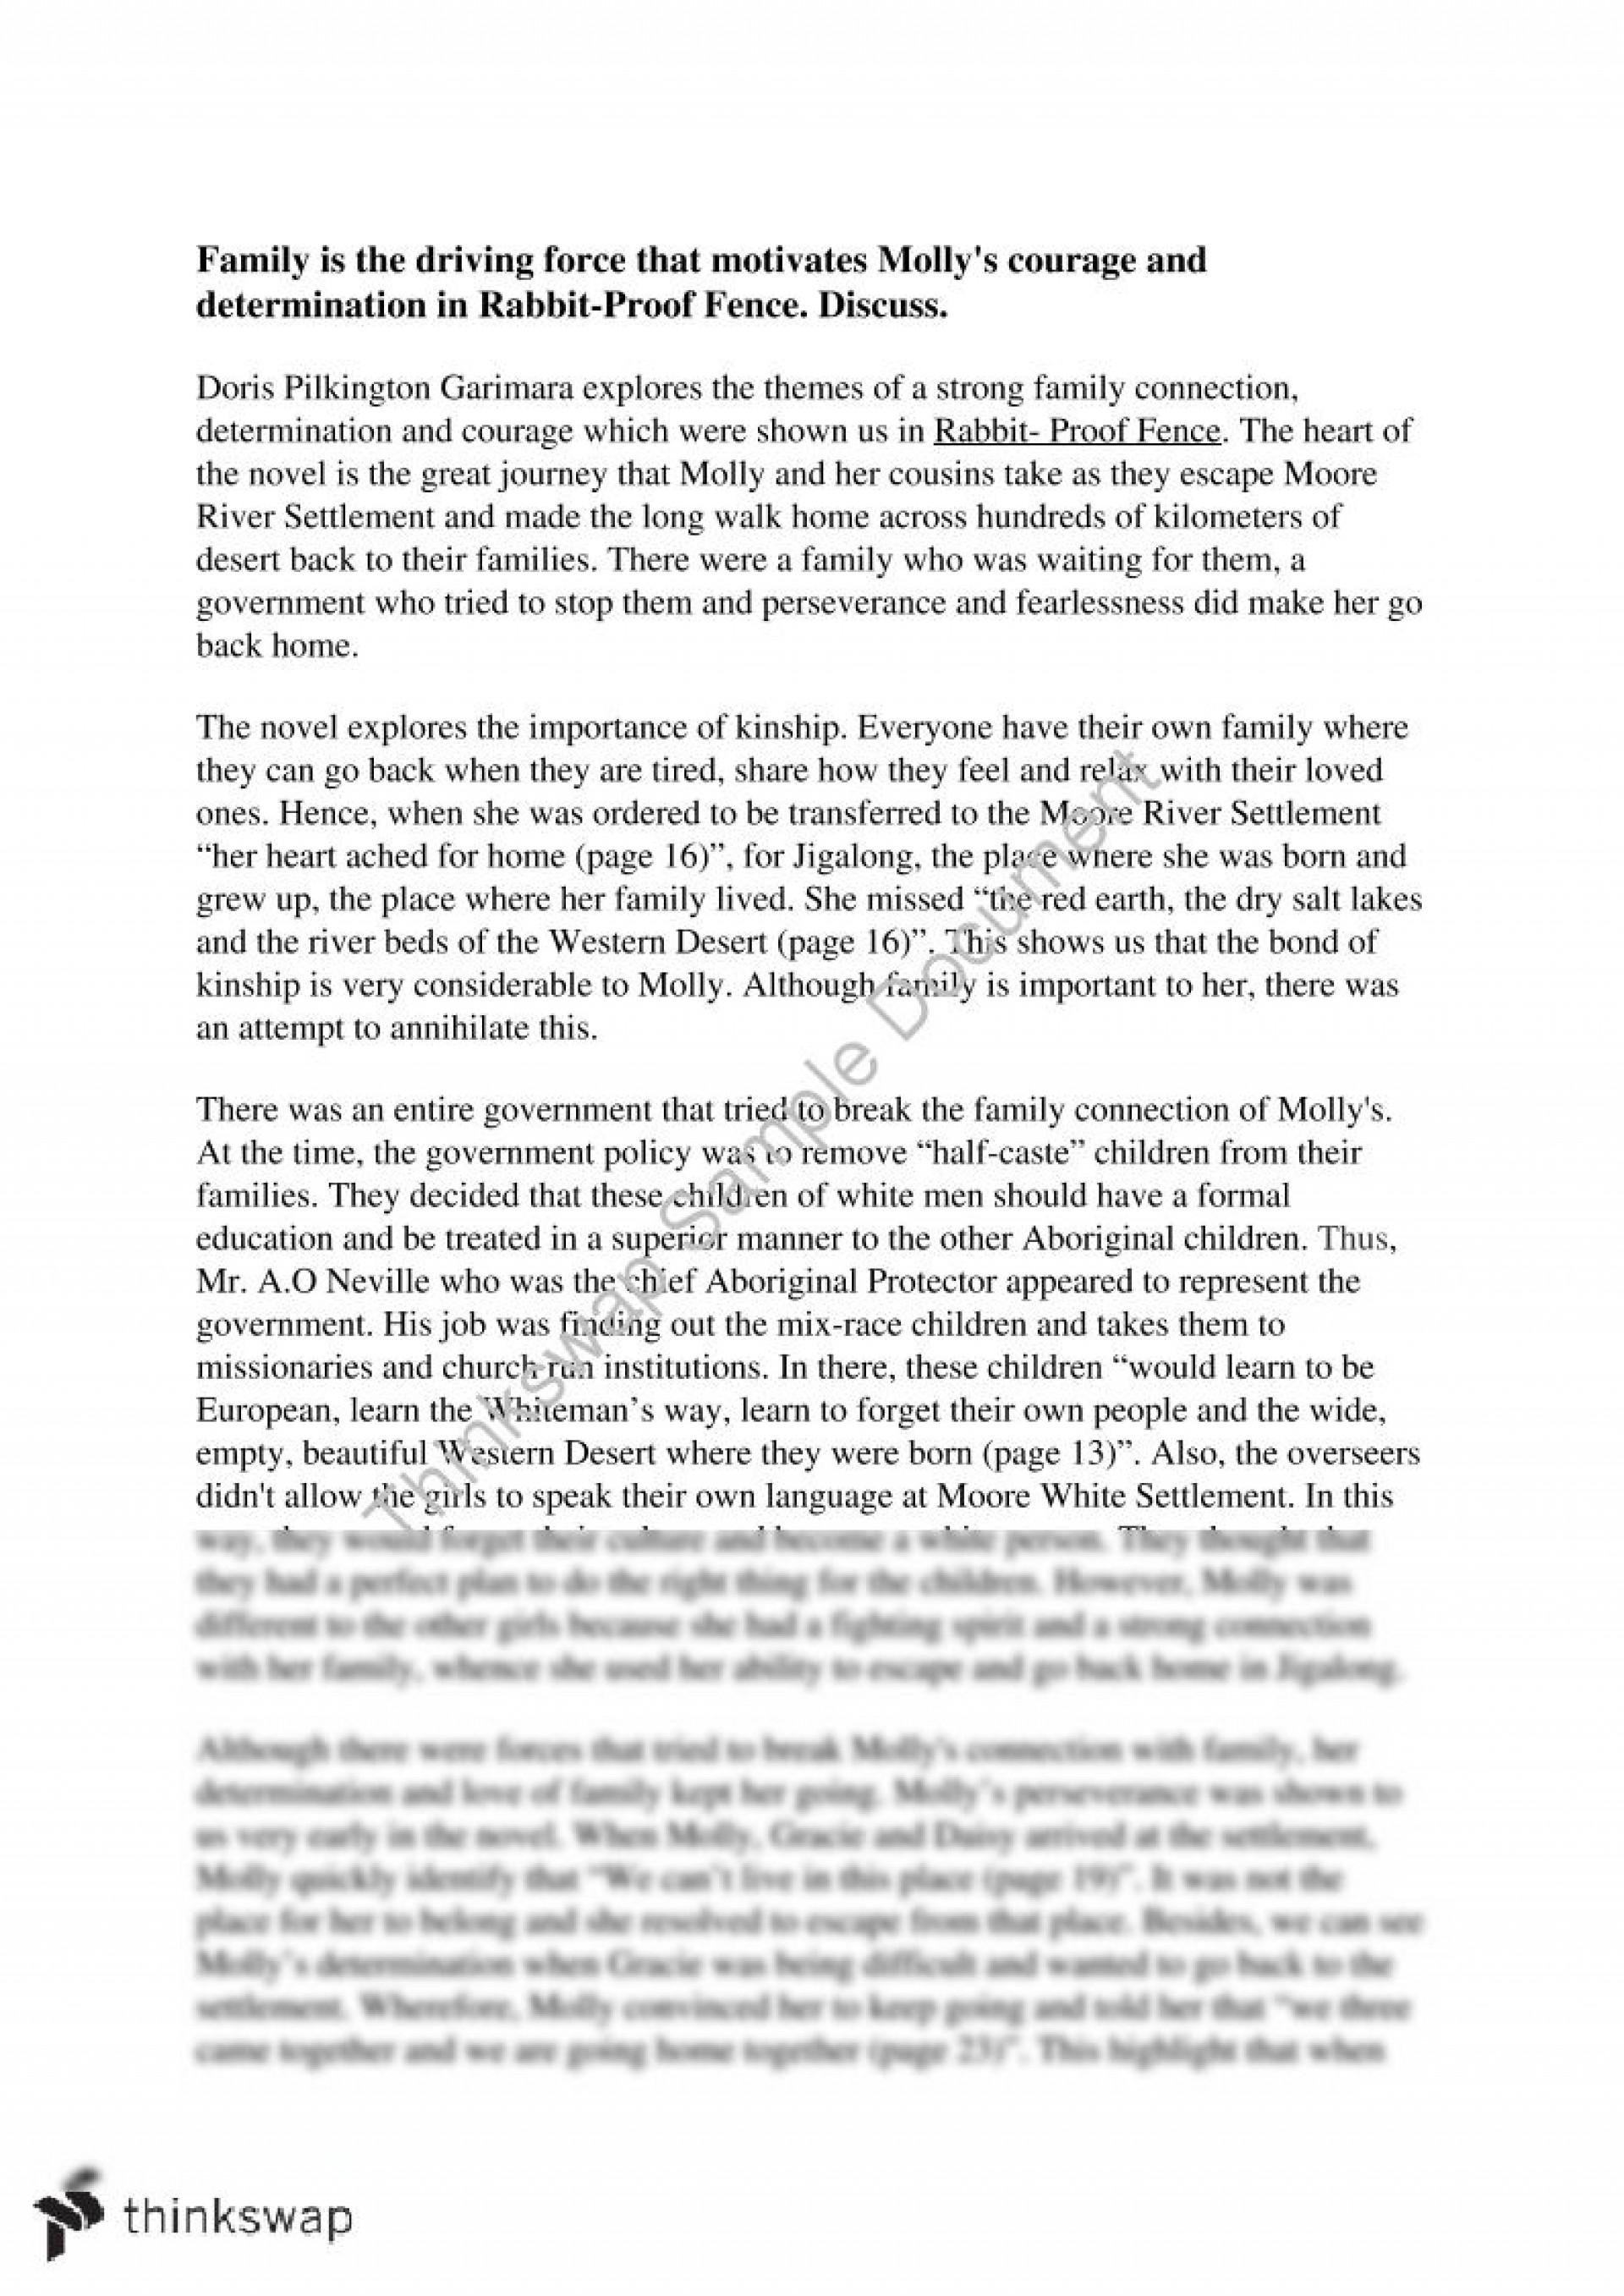 007 Essay Example 96427 Textresponseealcore Docx Fadded41 Rabbit Proof Fence Film Top Review 1920